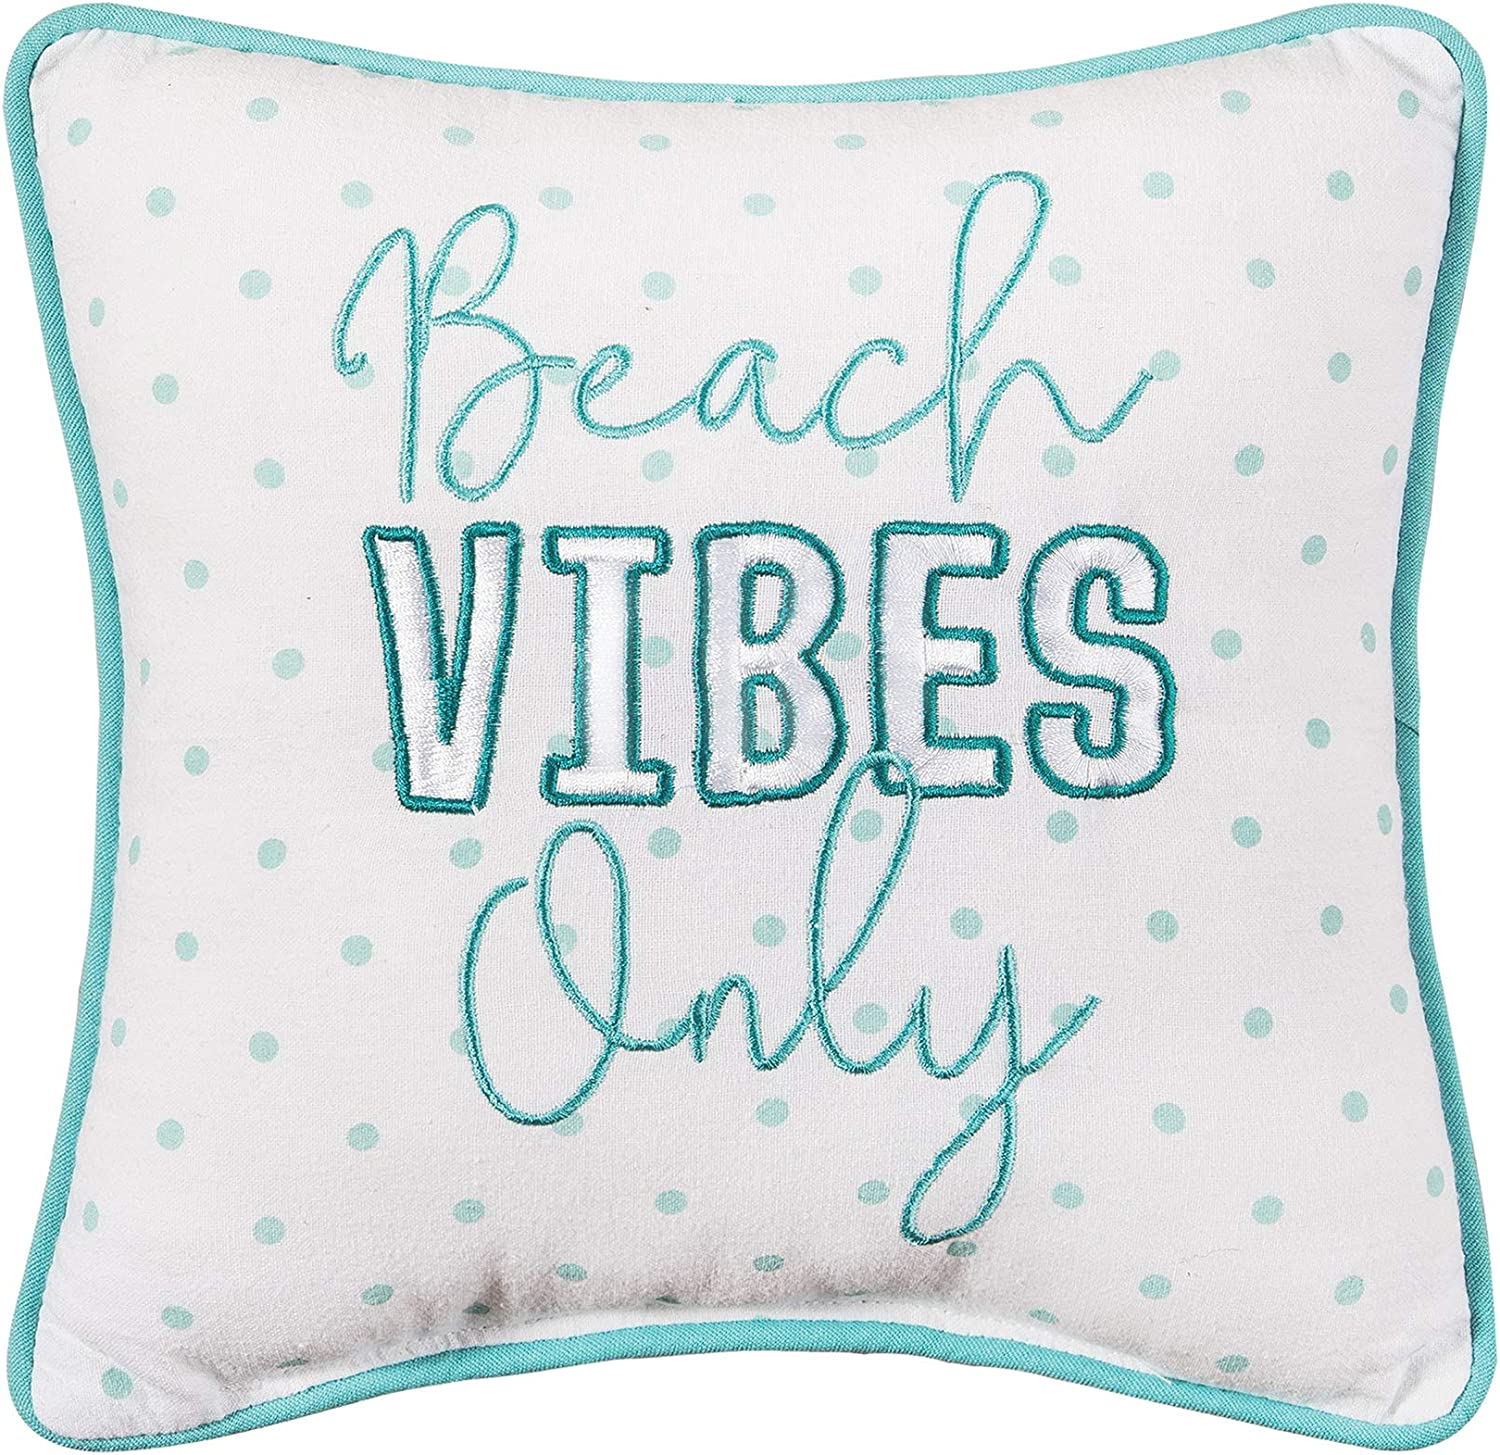 C&F Home Beach Vibes Only Decorative Accent Throw Pillow Square with Funny Saying Polka Dots Home Decor for Bed Sofa Couch Chair 10 x 10 Blue